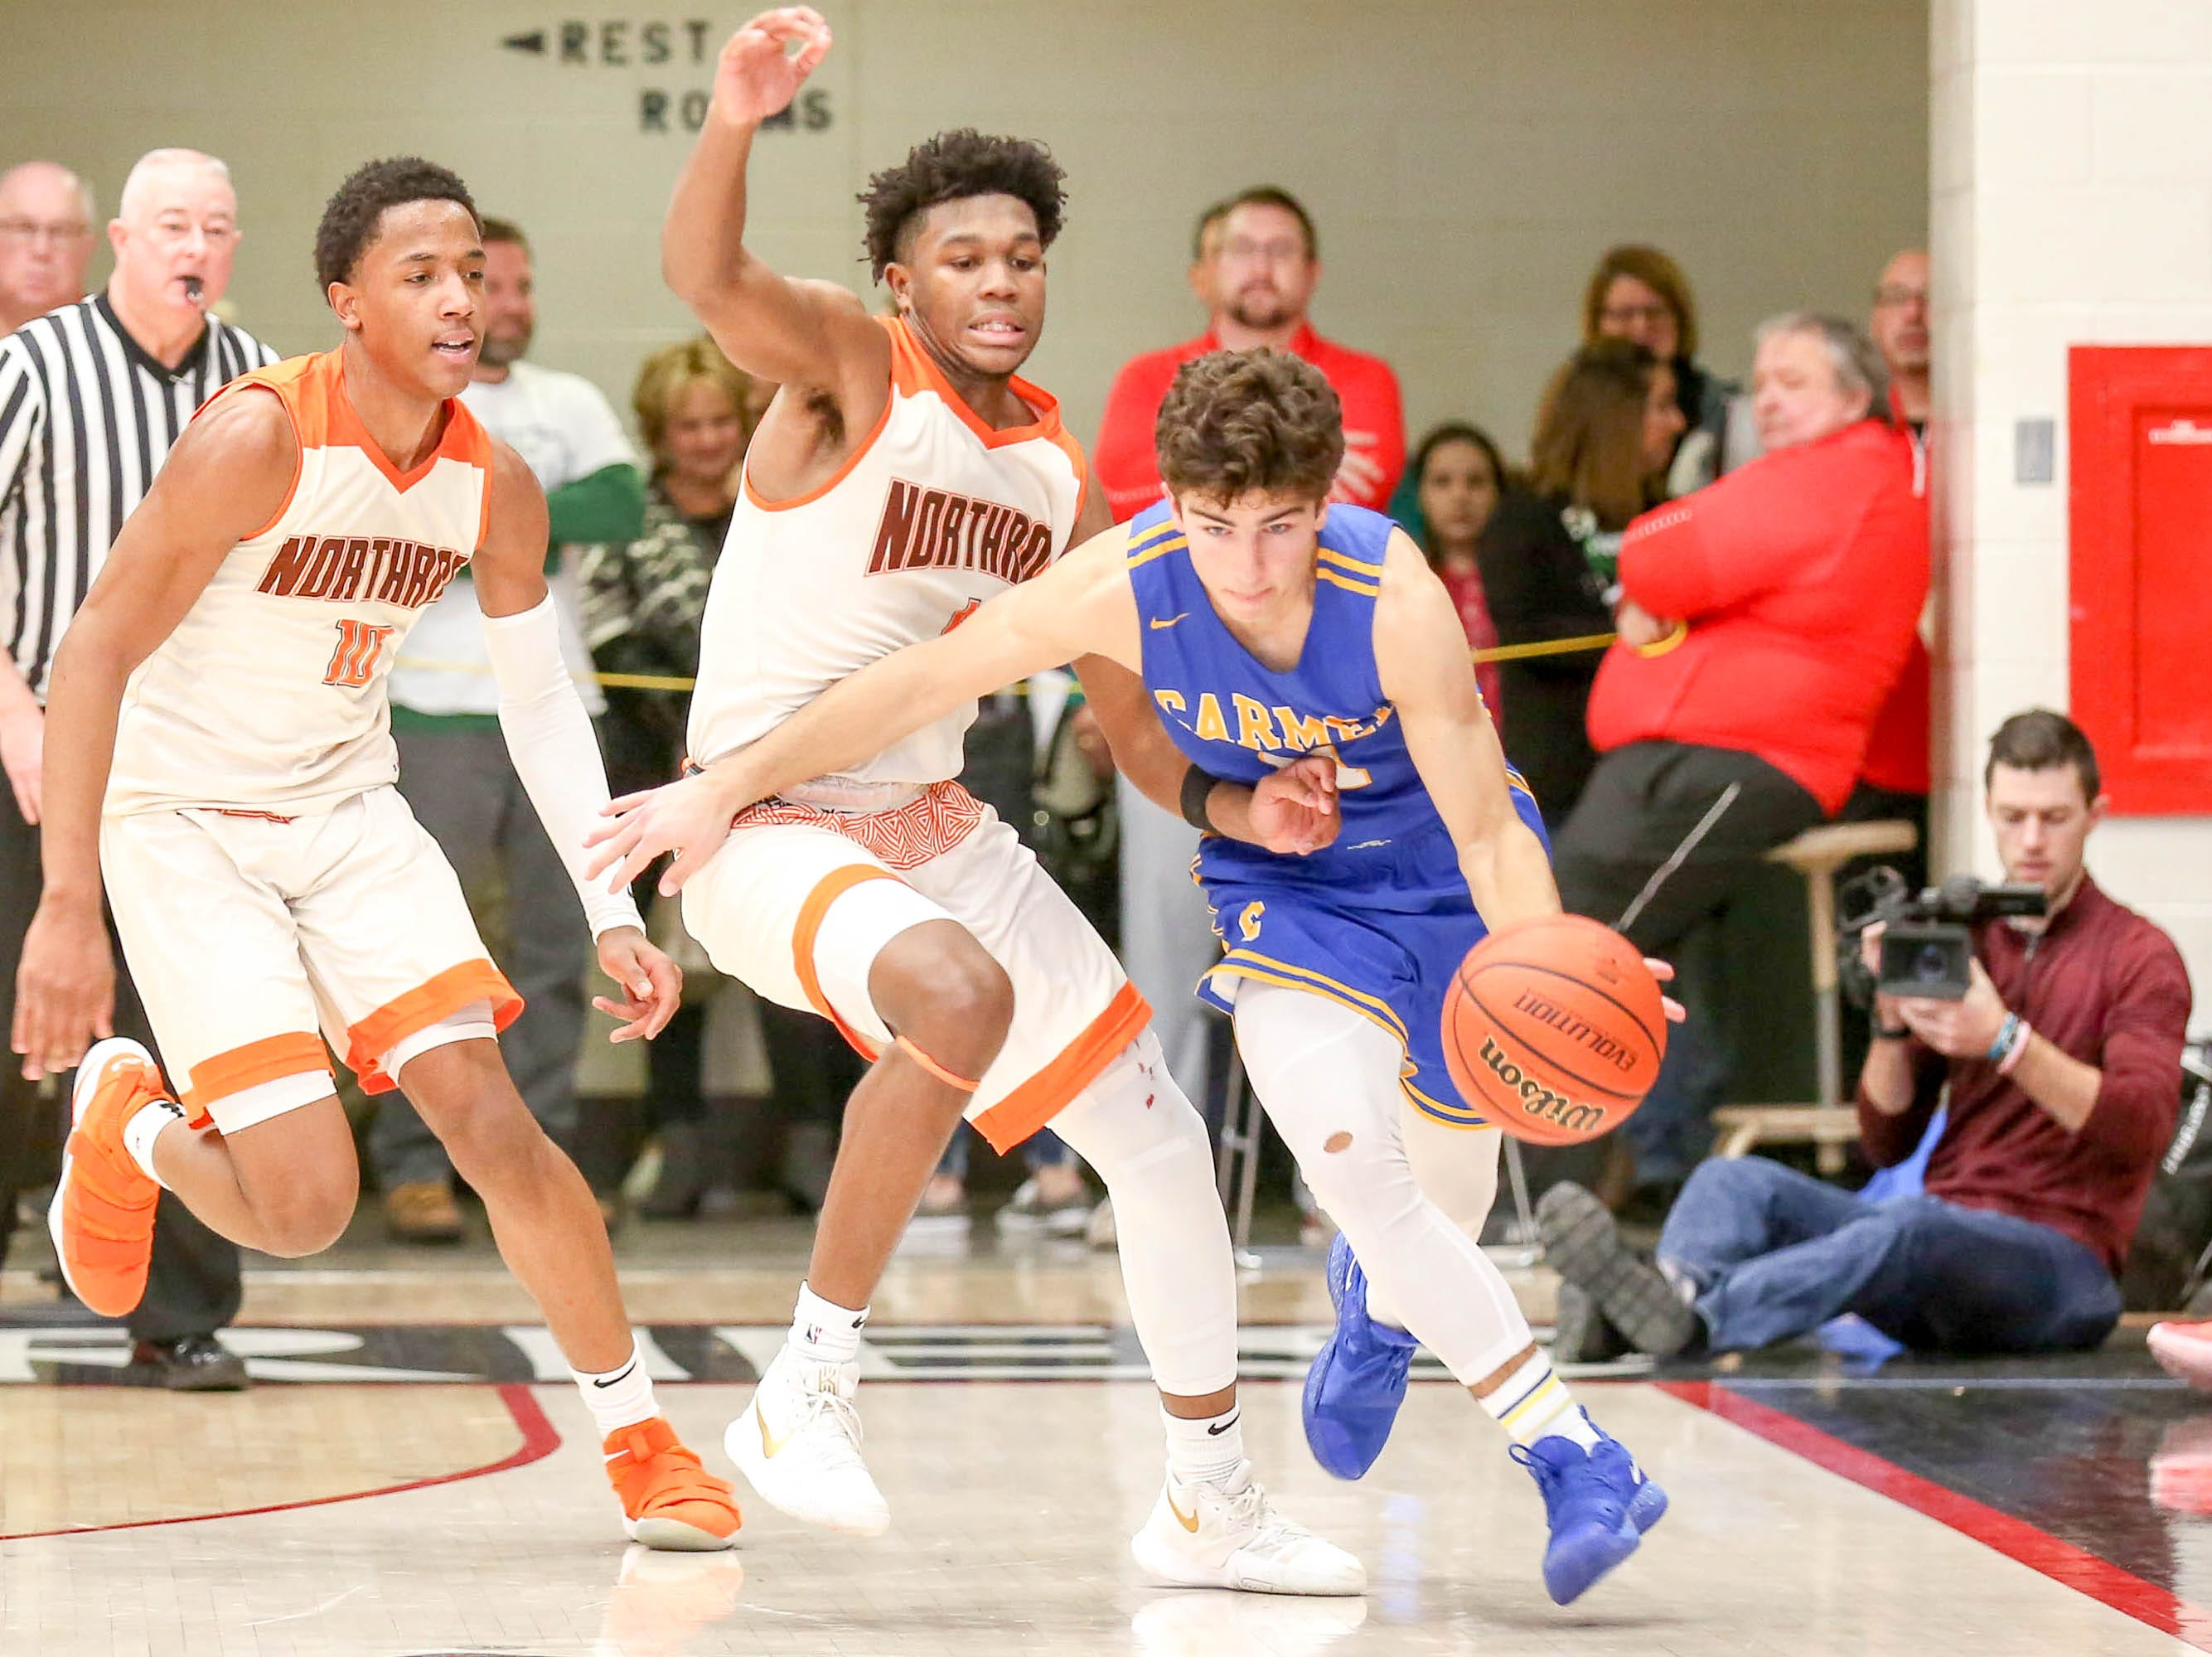 Carmel's Luke Heady (11) draws the foul from Forth Wayne Northrop Qualen Pettus (4) during the second half of Carmel vs. Fort Wayne Northrop High School in the IHSAA Varsity Boys Regional Semifinals held at Logansport High School, March 9, 2019.